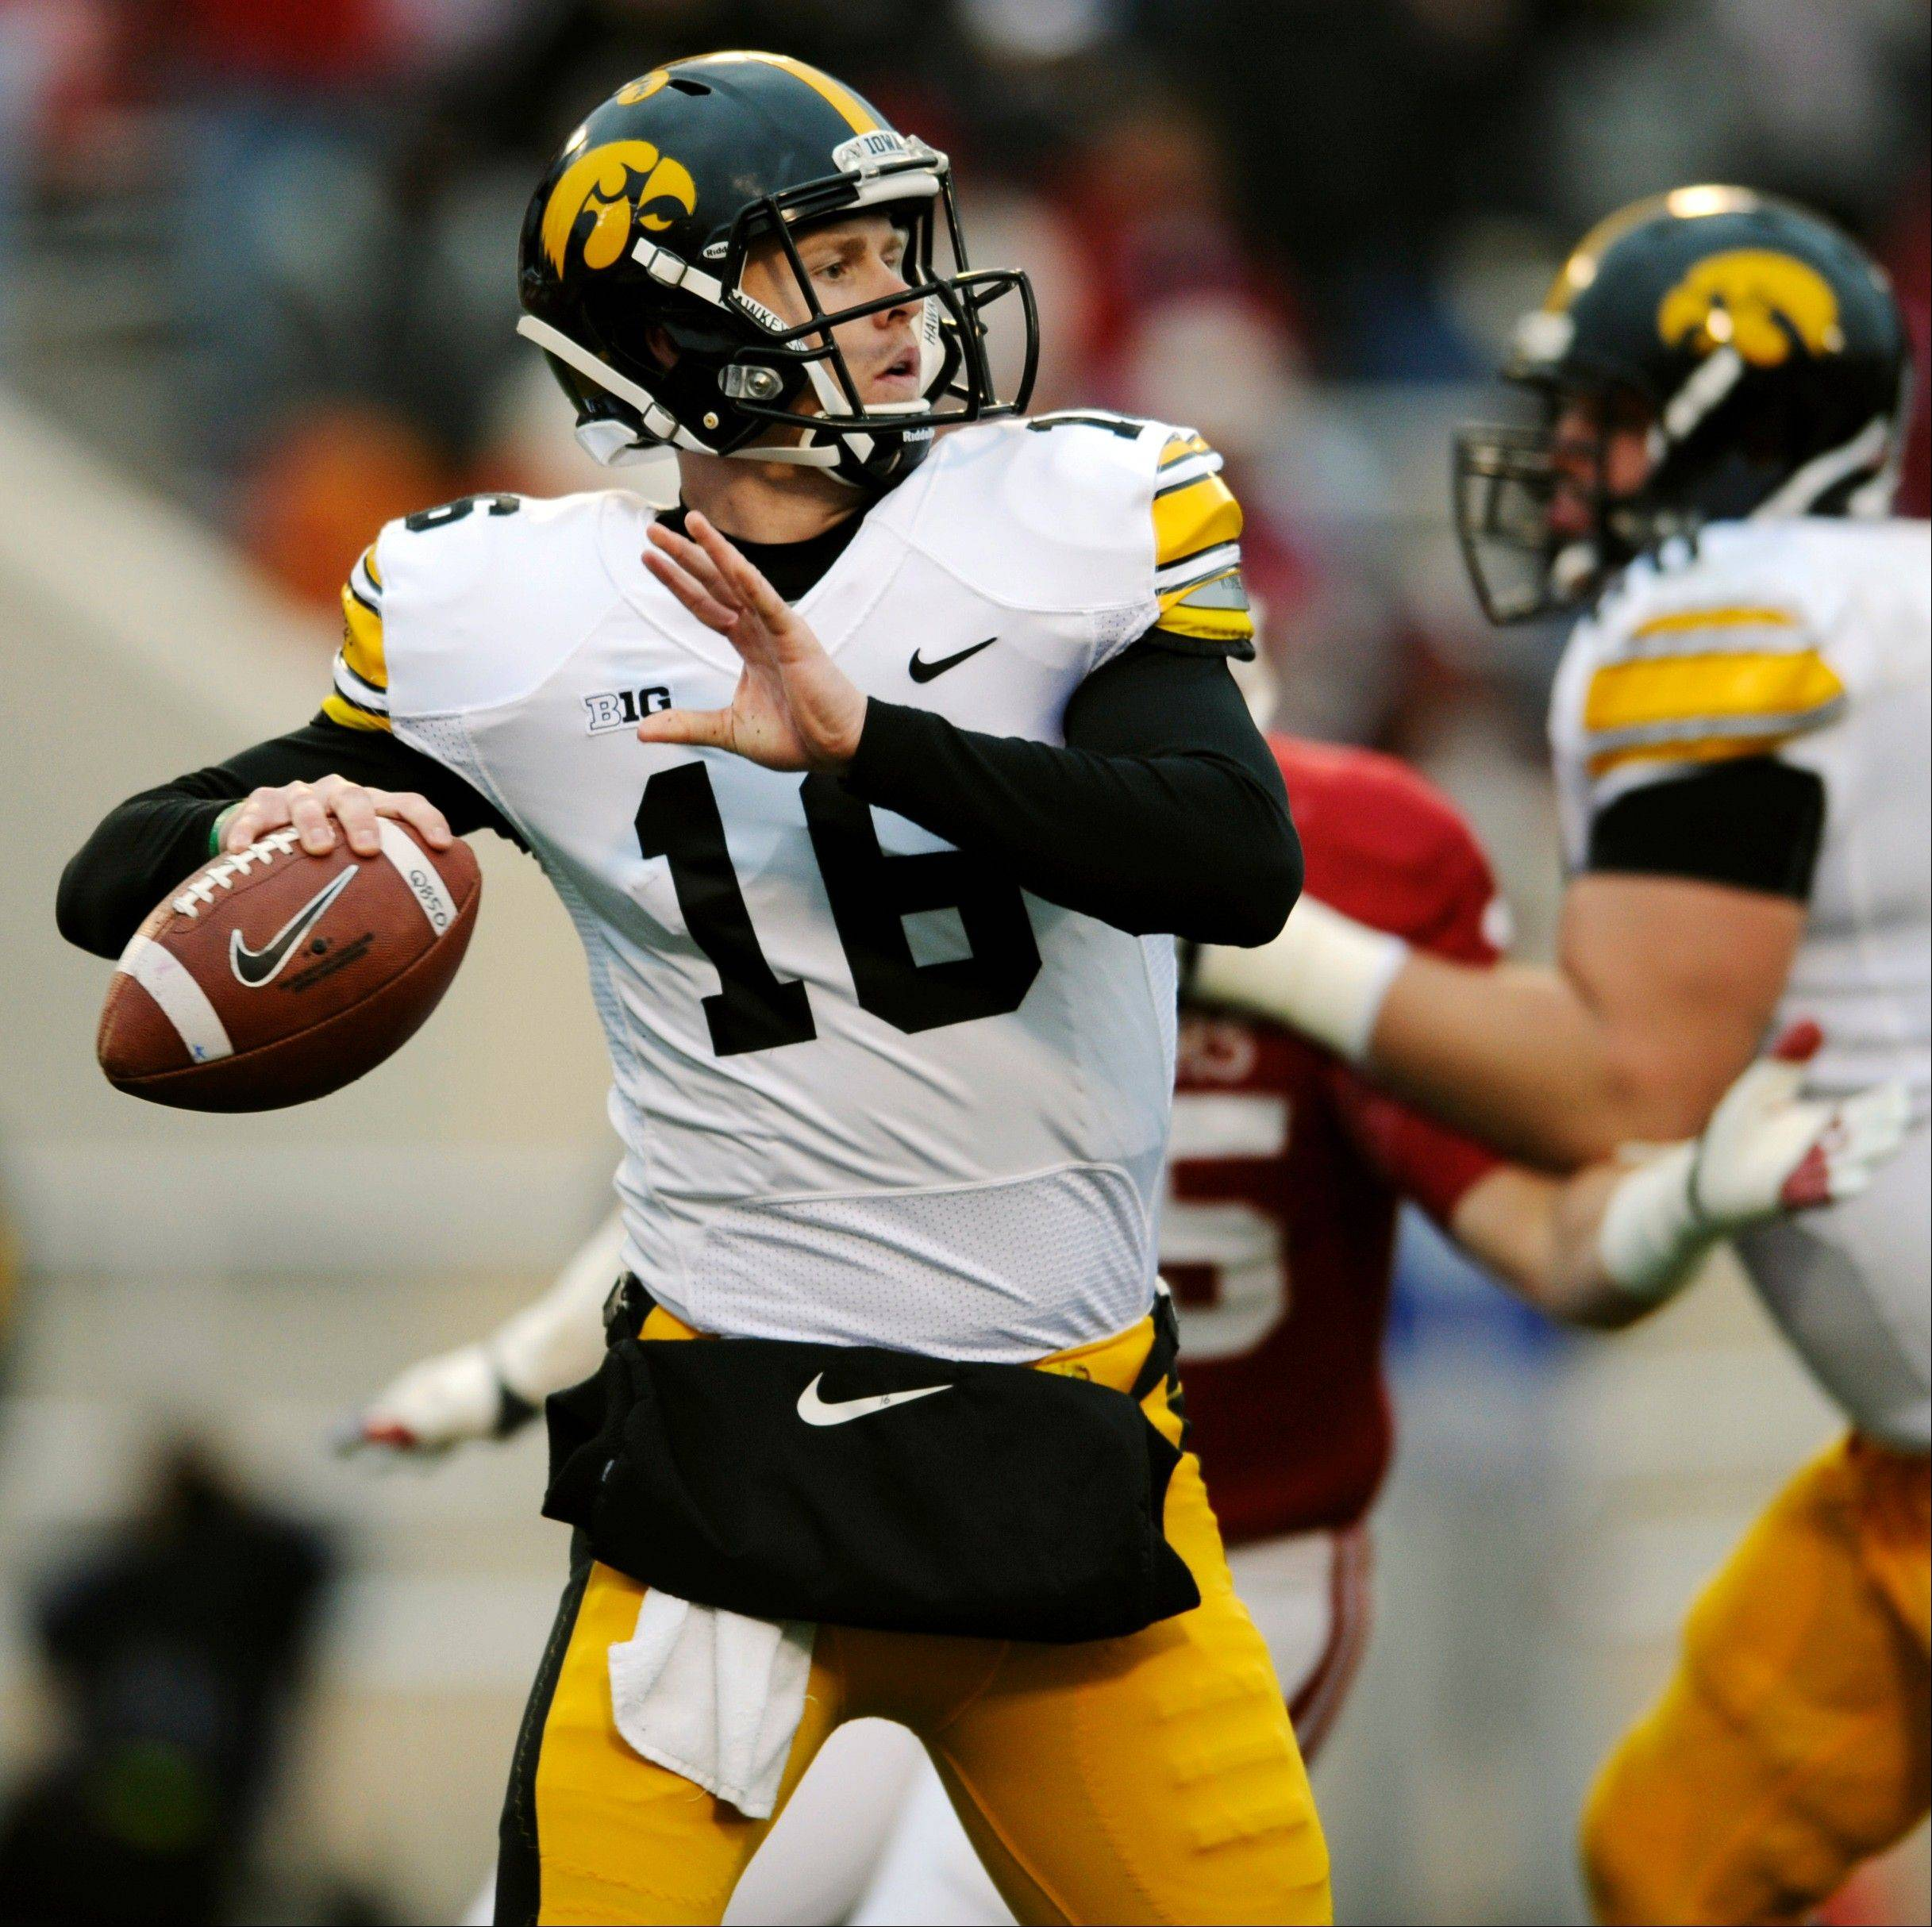 Iowa quarterback James Vandenberg looks to throw Saturday against Indiana in Bloomington, Ind.